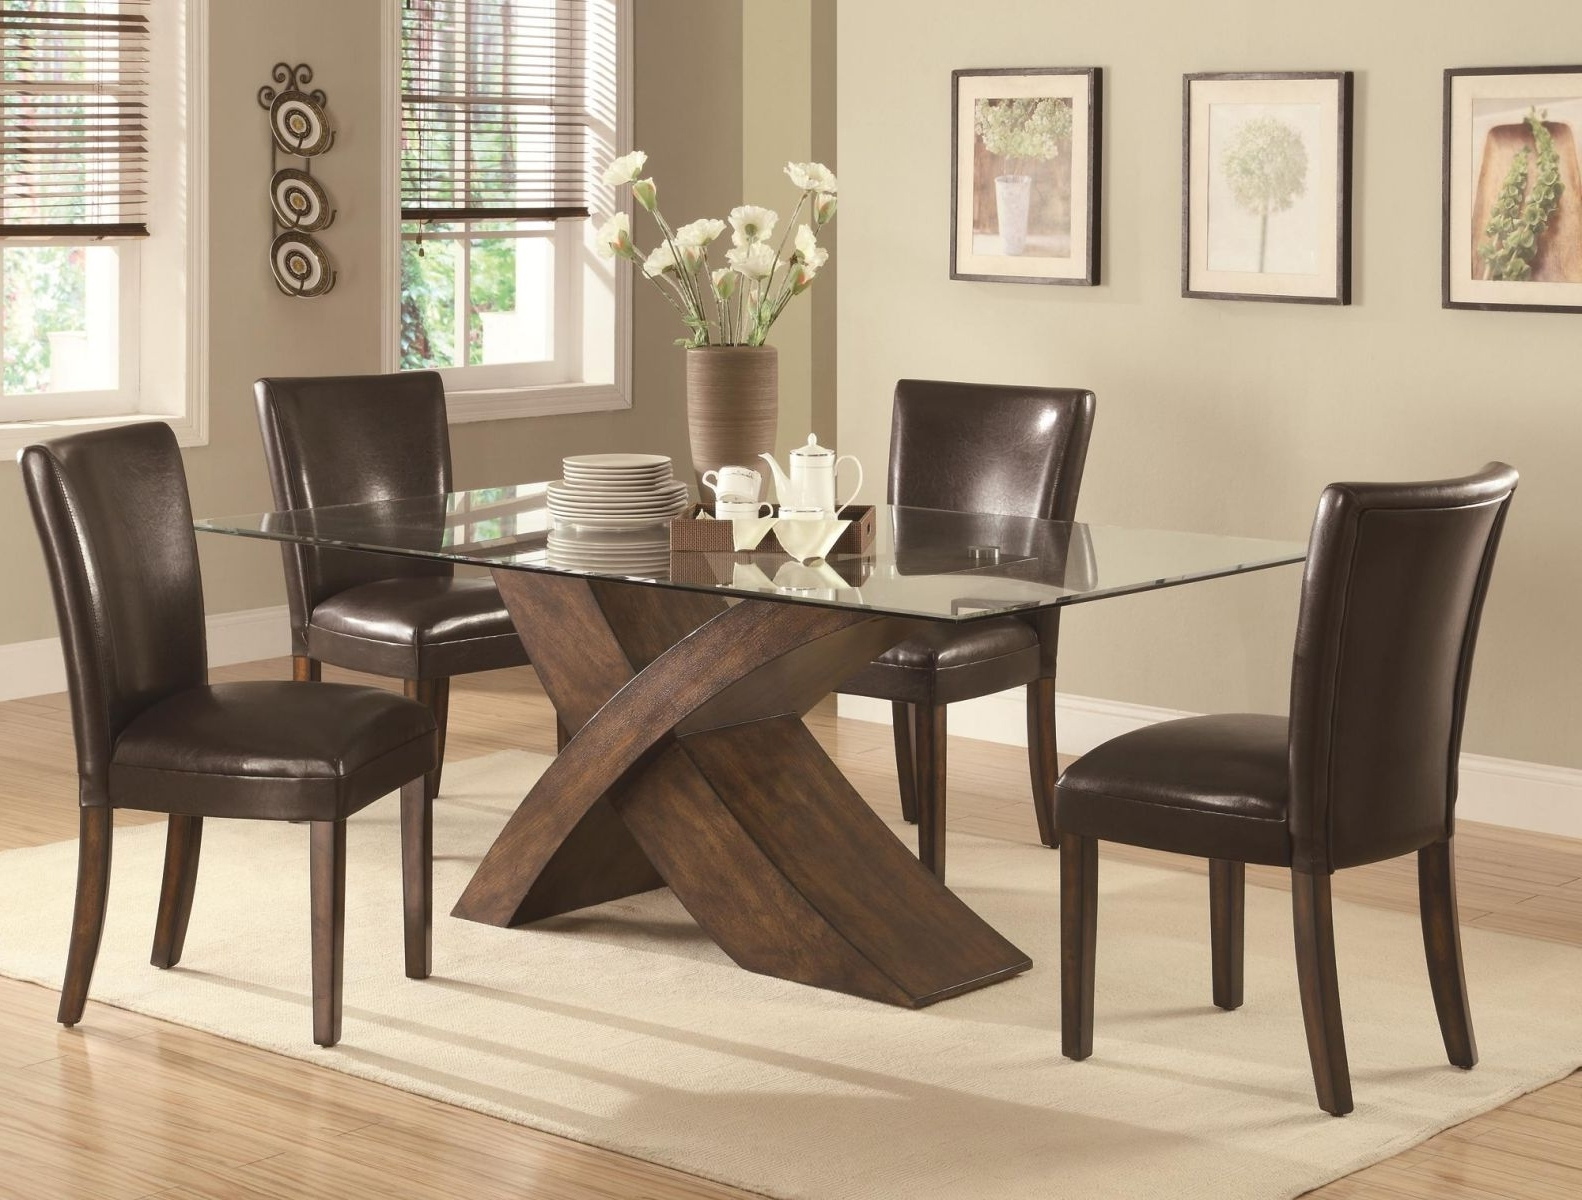 Favorite Modern Dining Suites Regarding Dining Room Table Prices Dining Room Design Di # (View 20 of 25)